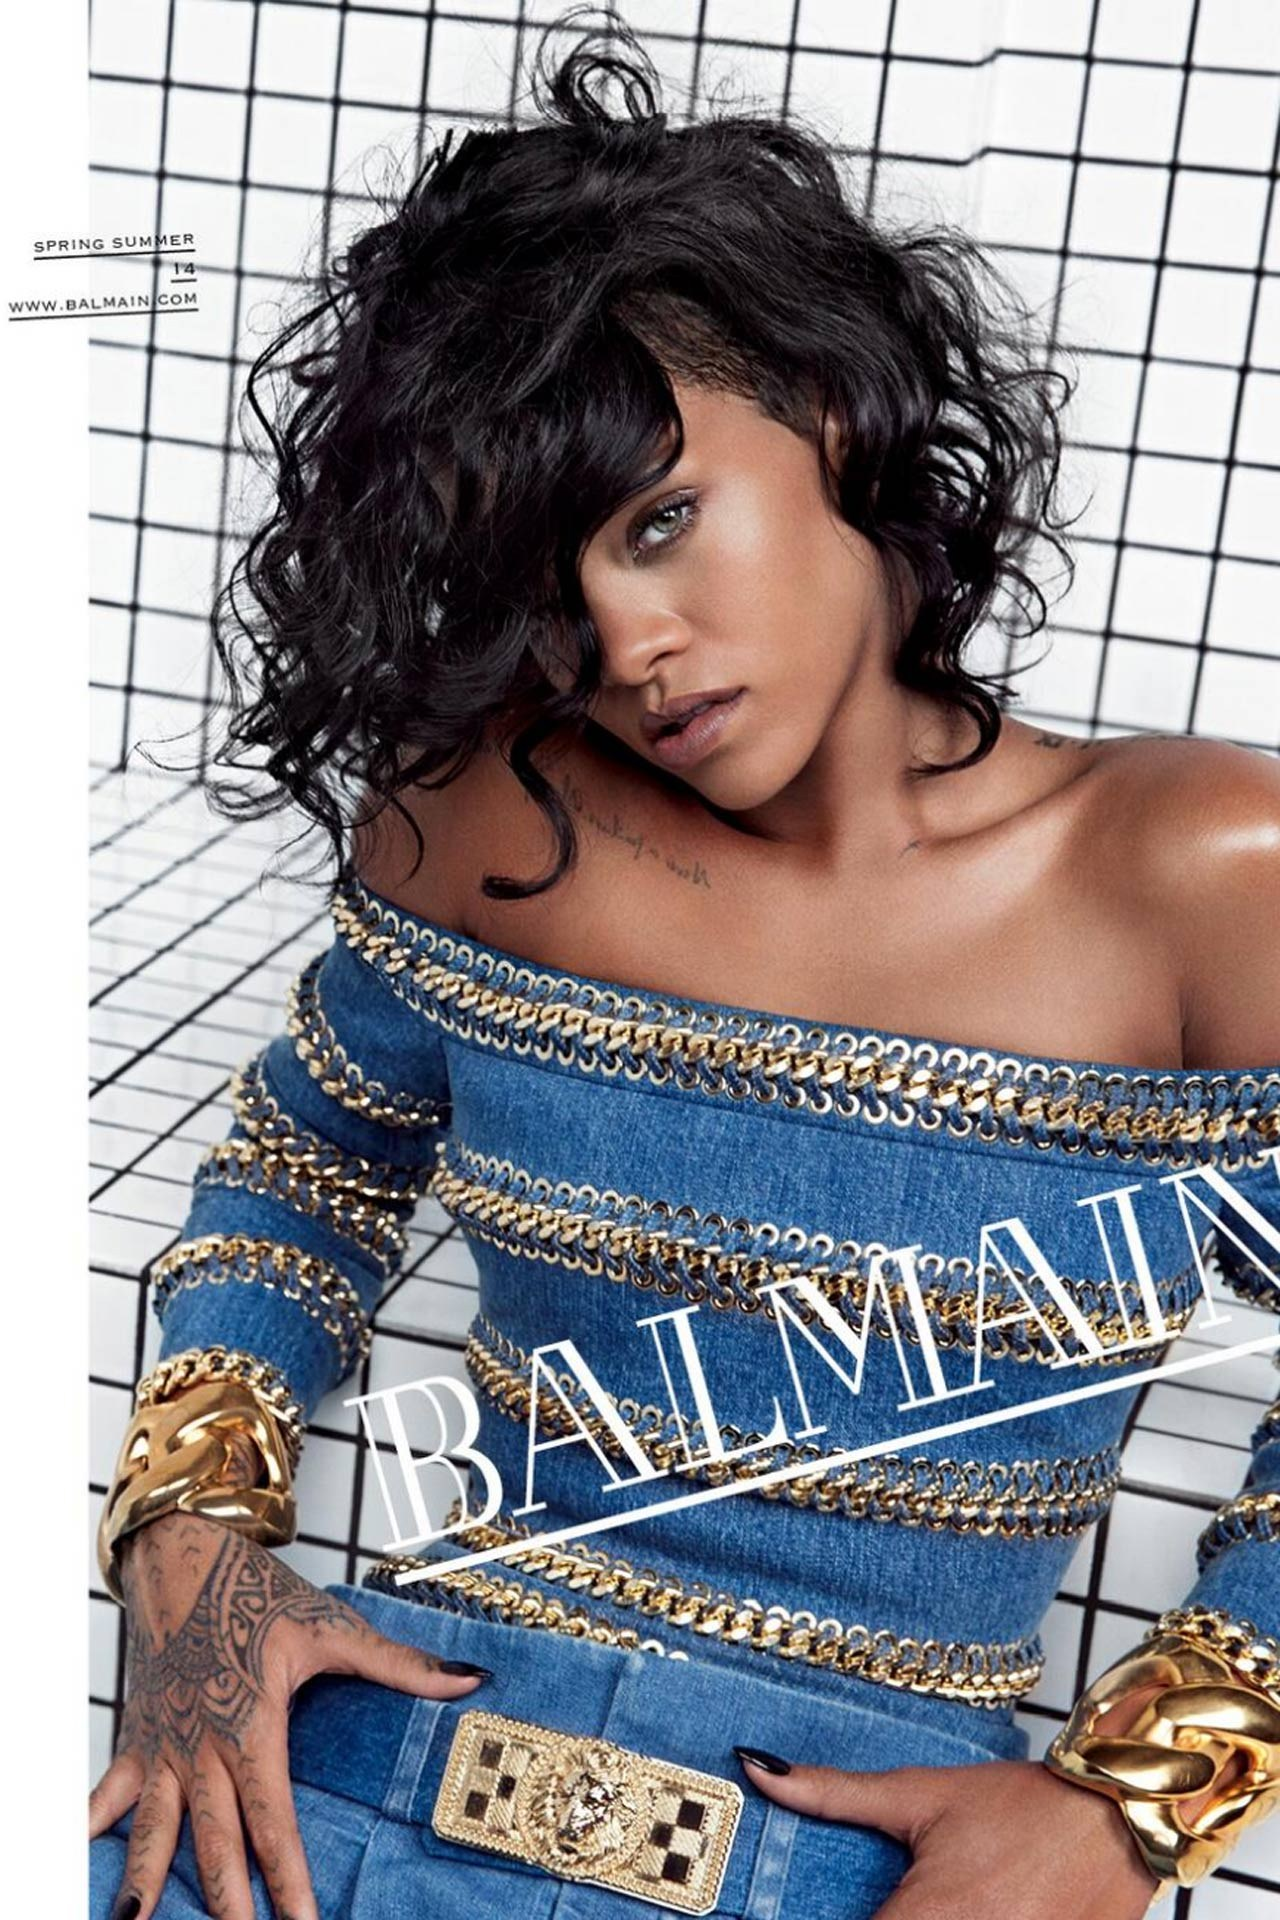 Rihanna Named New Face Of Balmain 2